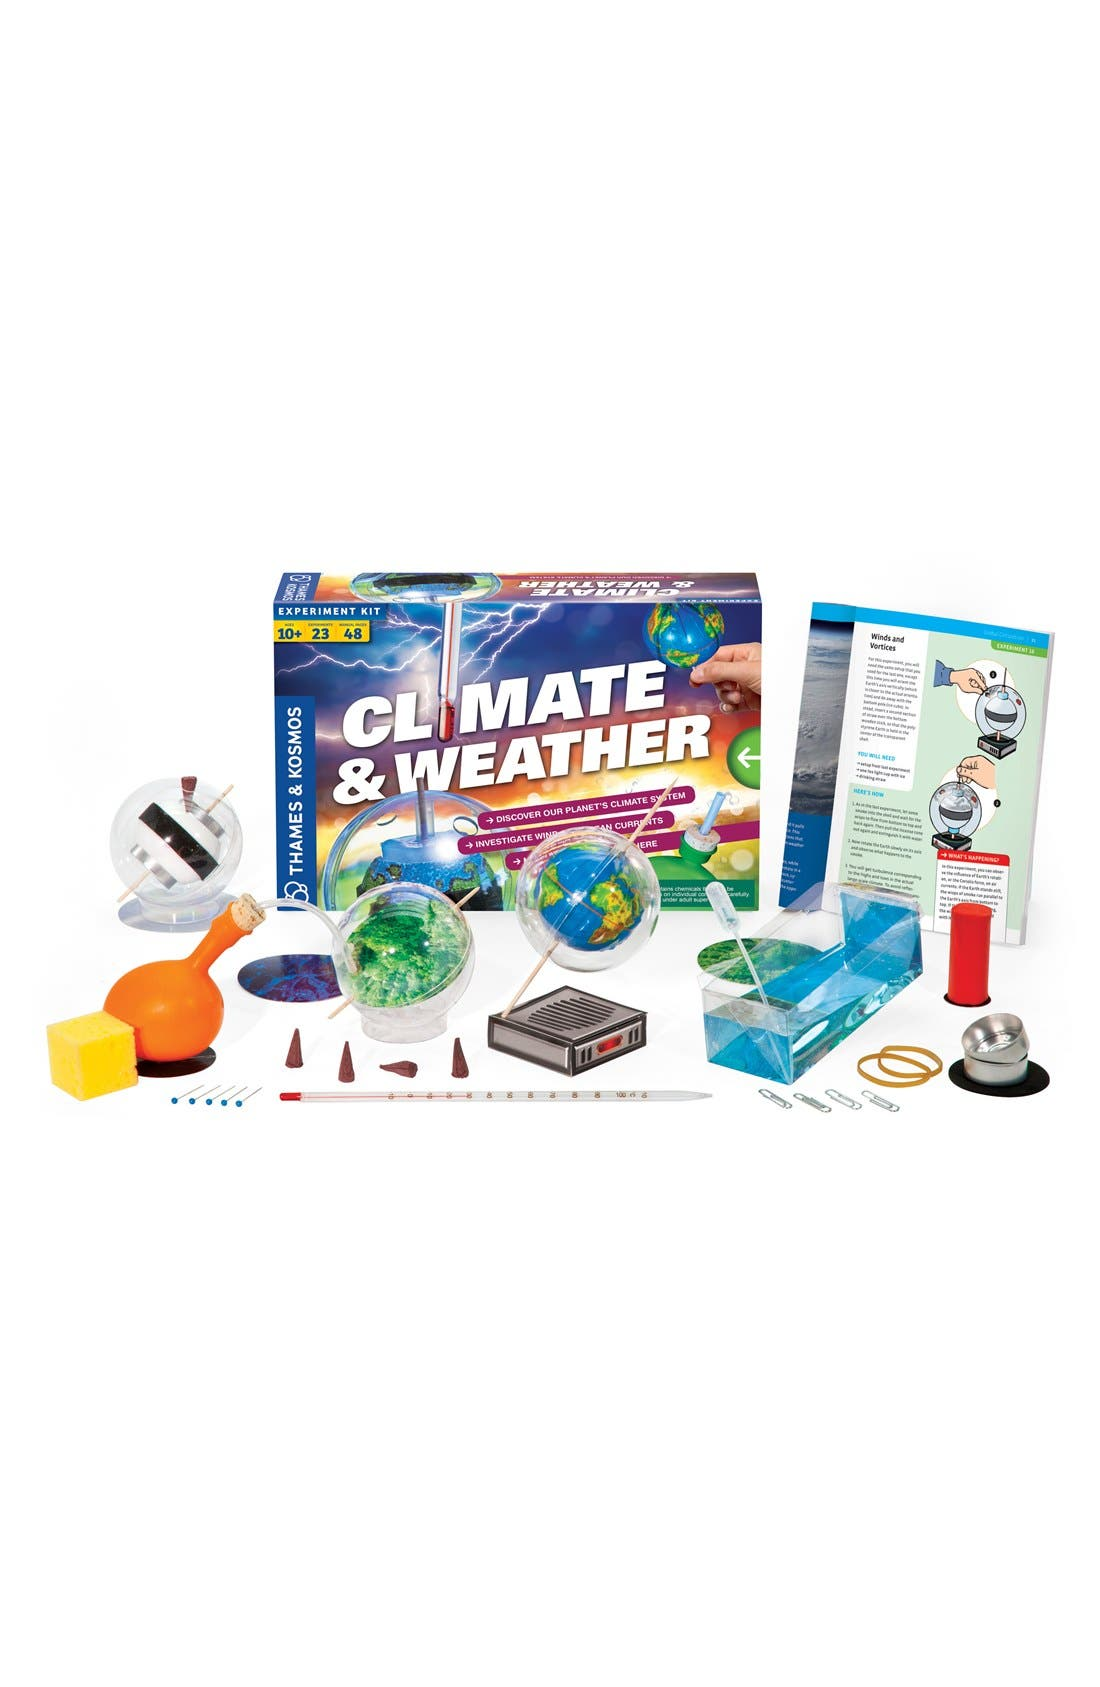 Thames & Kosmos 'Climate & Weather' Experiment Kit